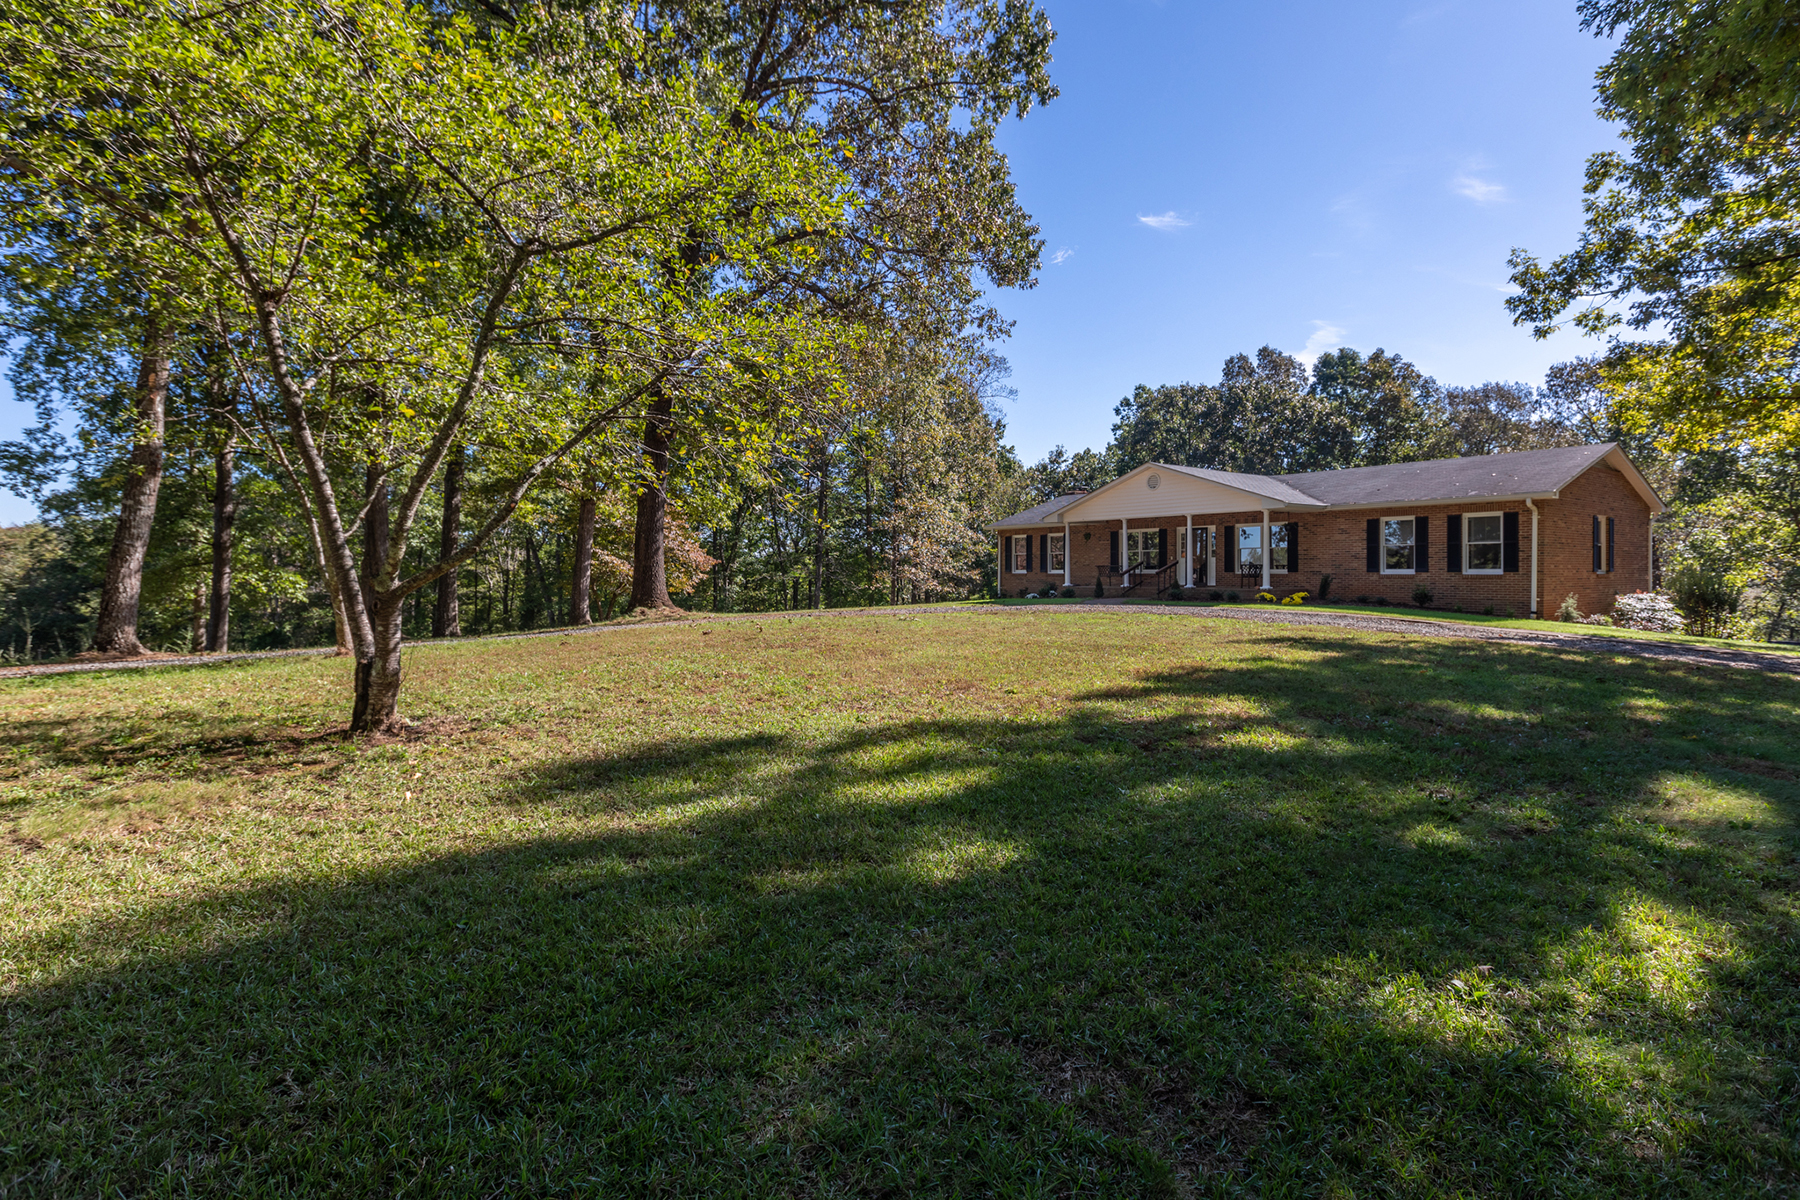 Single Family Homes for Sale at RUTHERFORDTON 280 Bennett Rd Rutherfordton, North Carolina 28139 United States